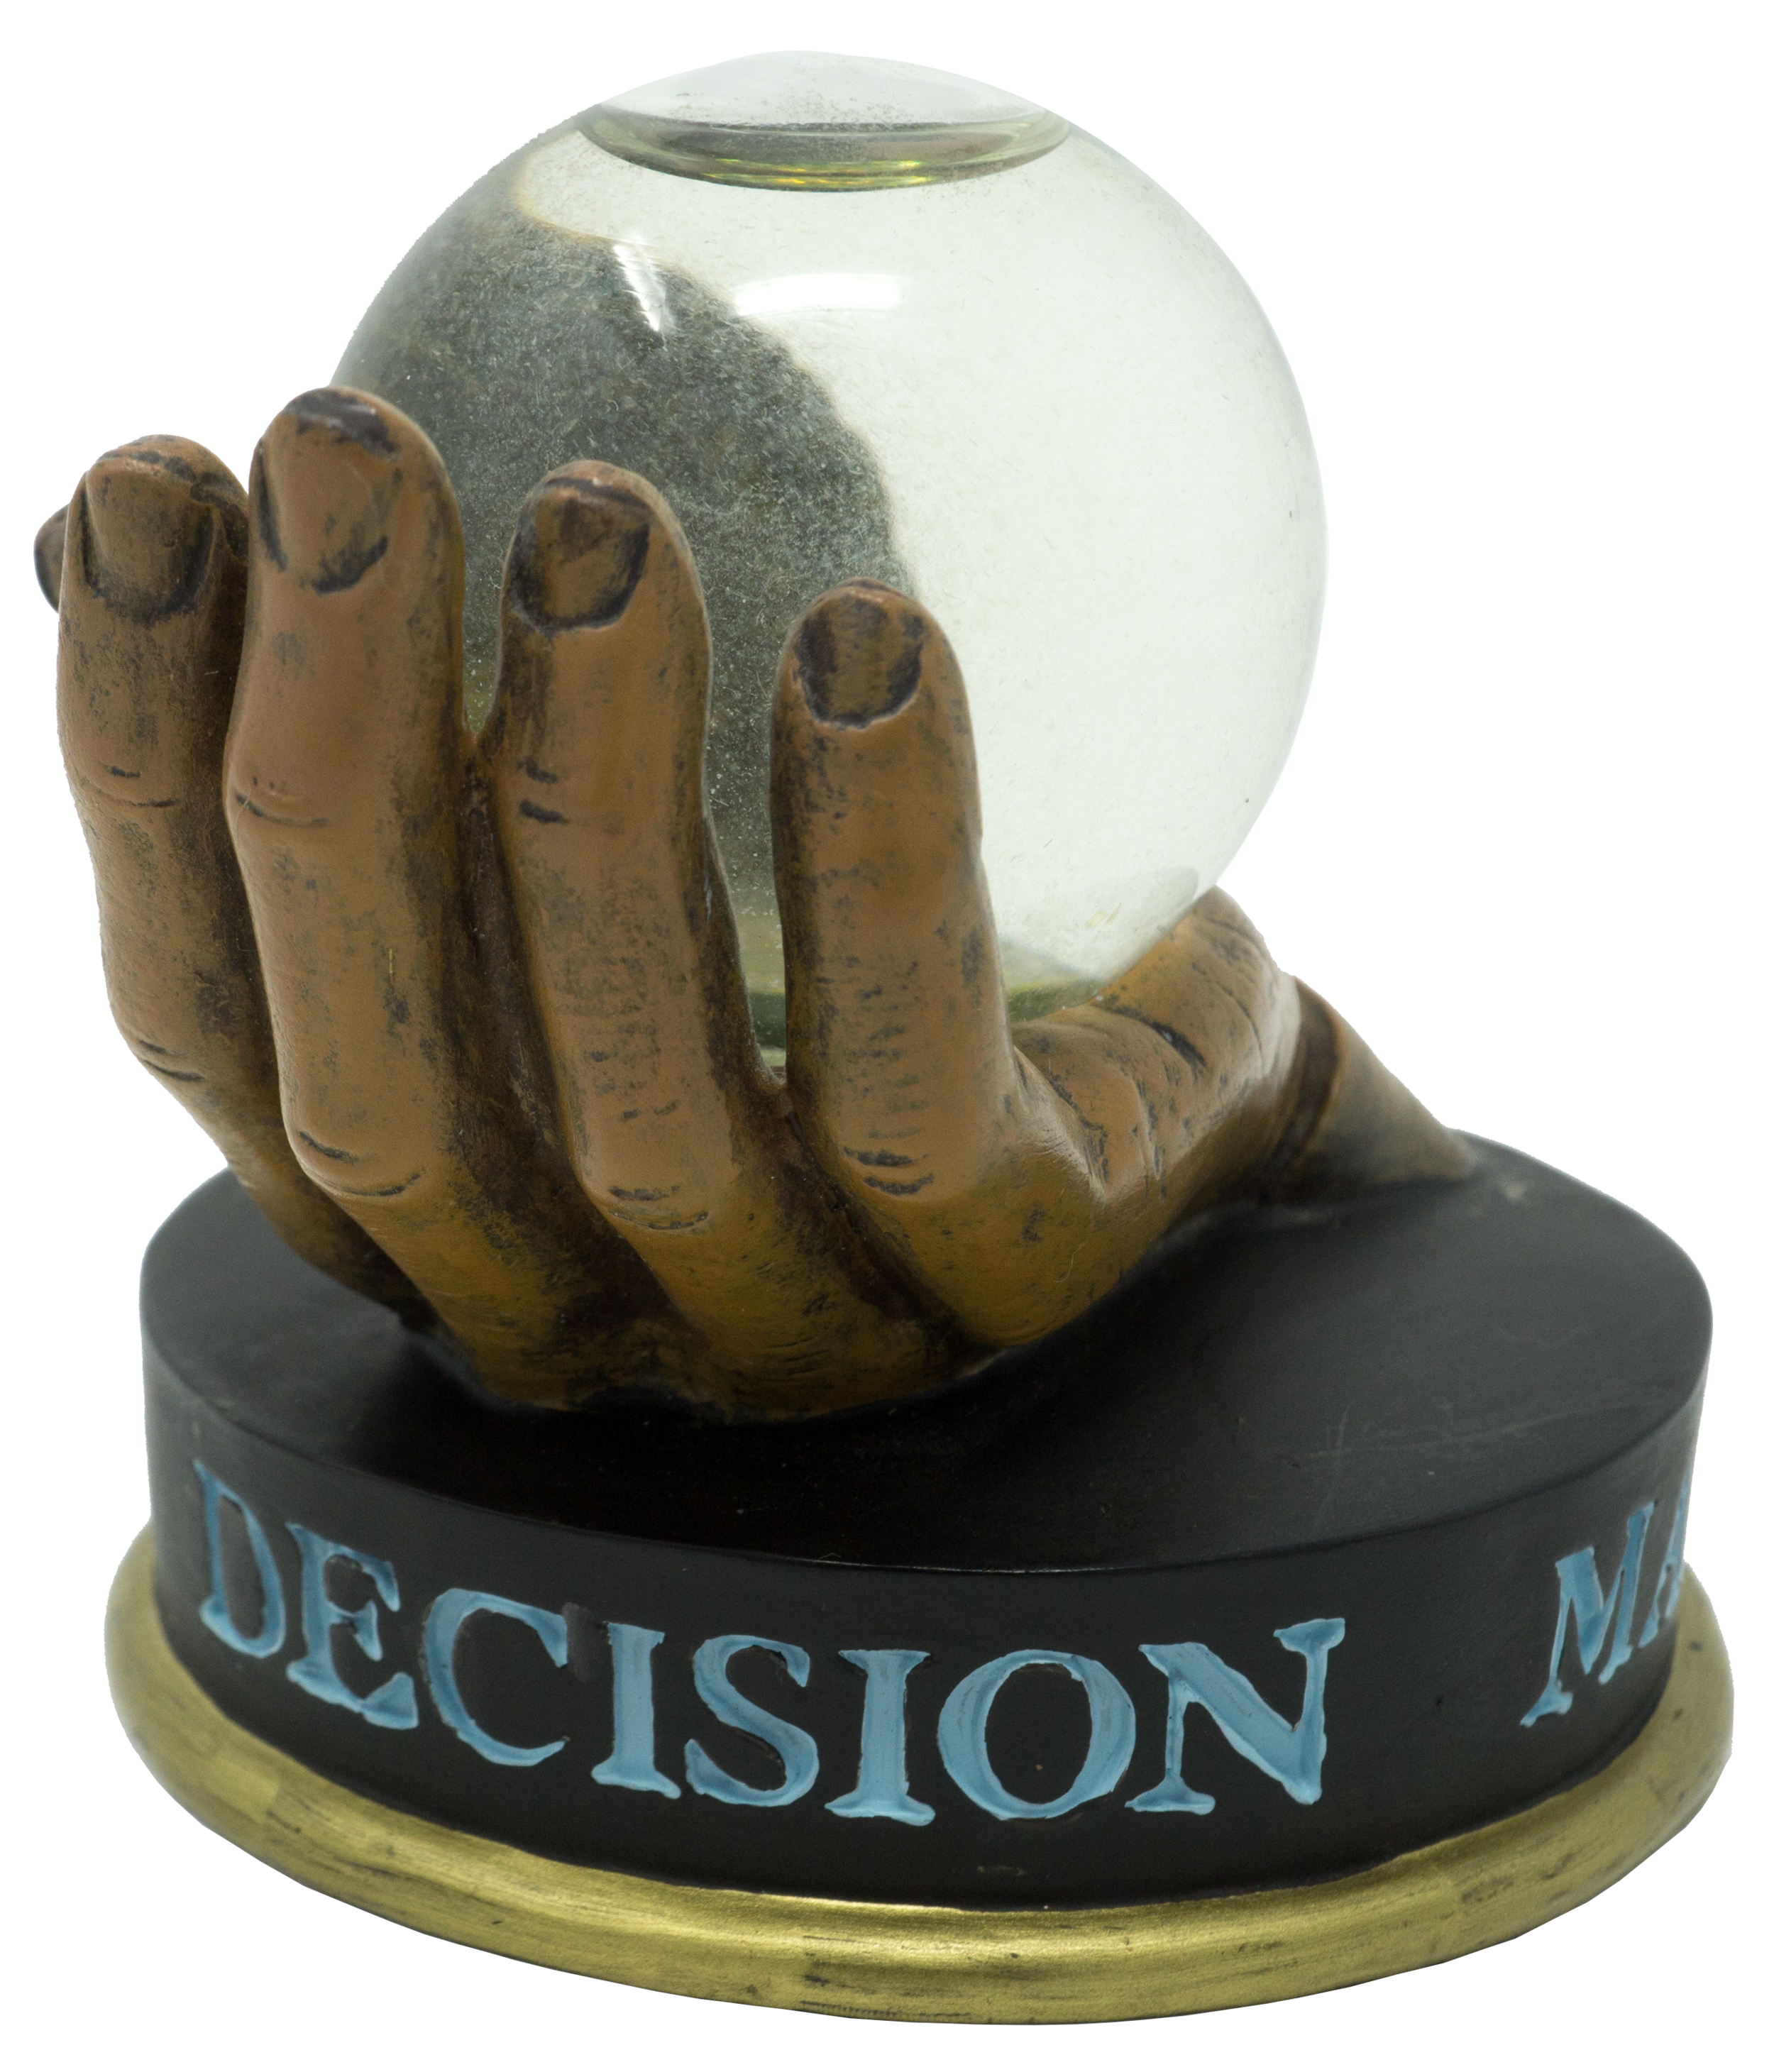 DECISIONS-1998-HAND_AND_GLOBE-PELZMAN_DESIGNS-05.png